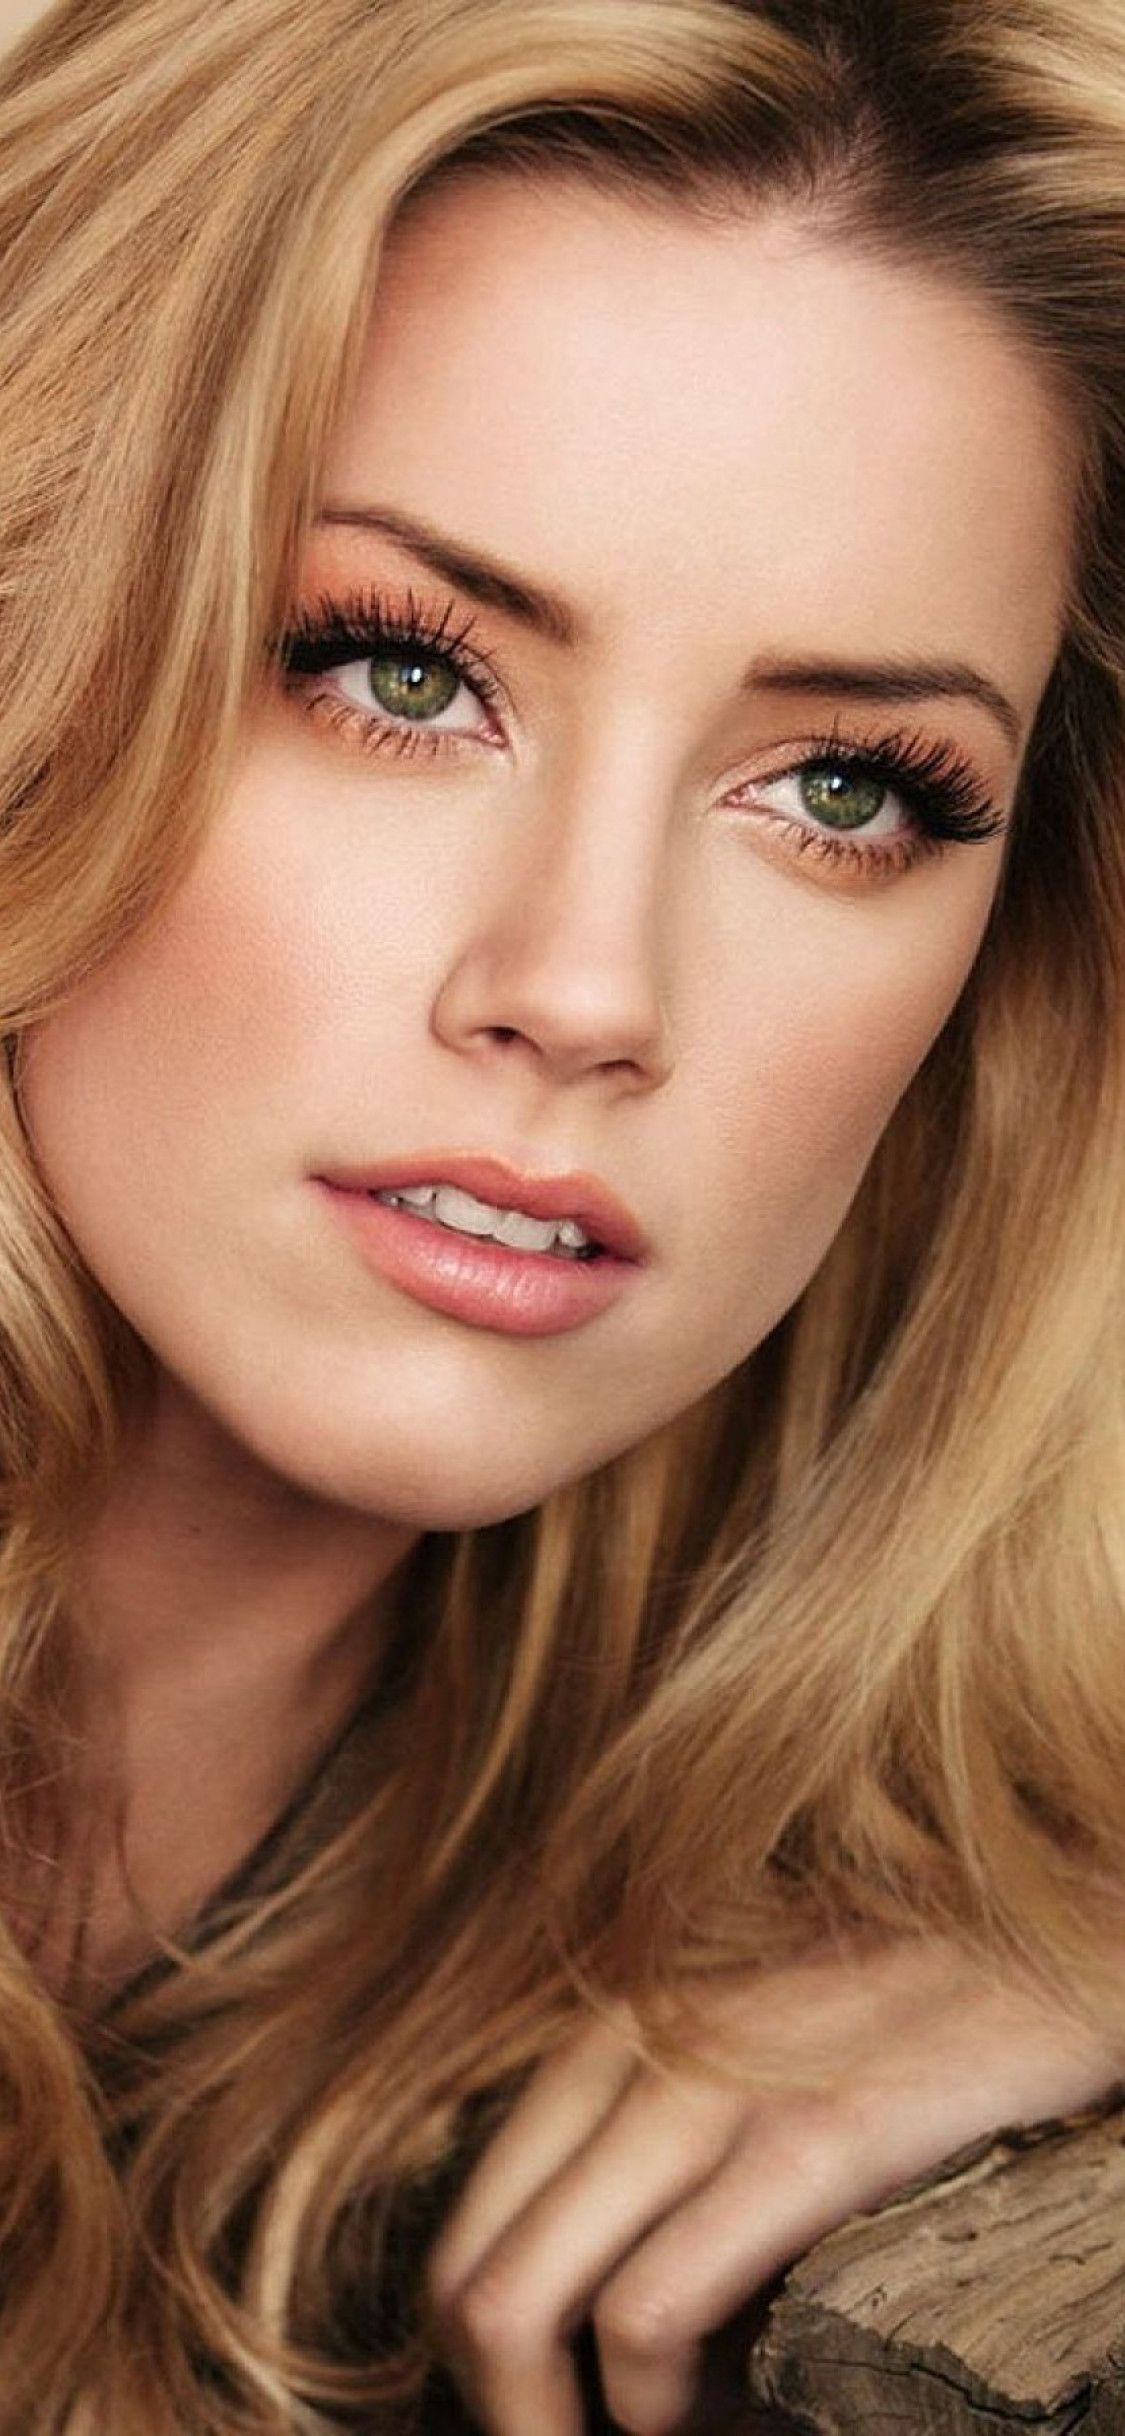 1125x2436 Amber Heard 2019 Iphone Xs Iphone 10 Iphone X Hd 4k Wallpapers Images Backgrounds Photos And Amber Heard Amber Heard Wallpaper Beautiful Girl Face